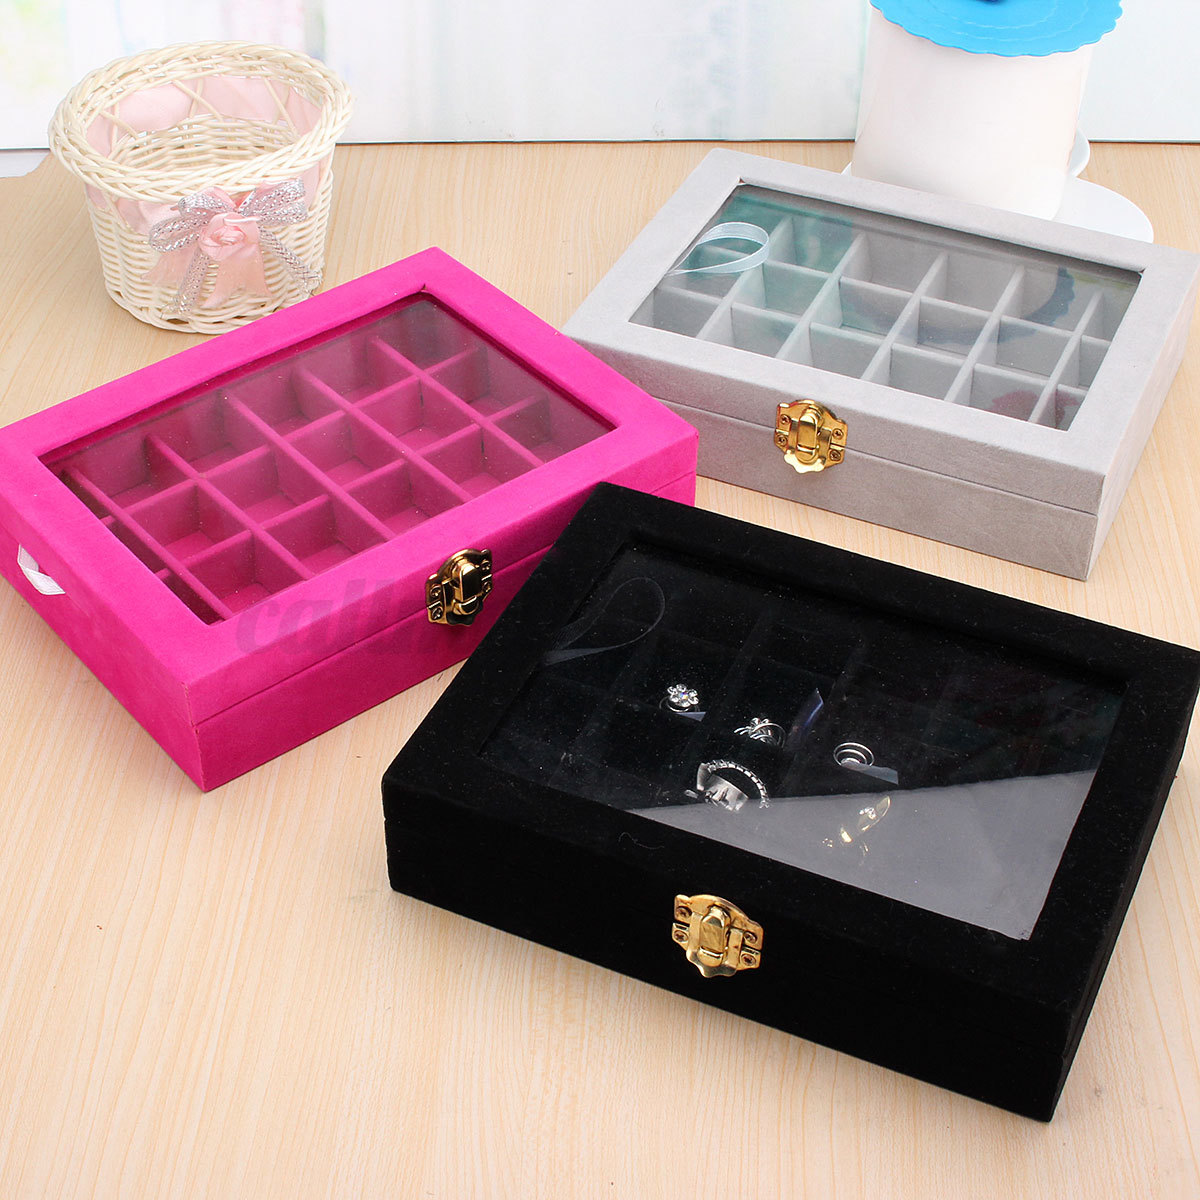 Uk Velvet Glass Jewelry Ring Display Organizer Case Holder